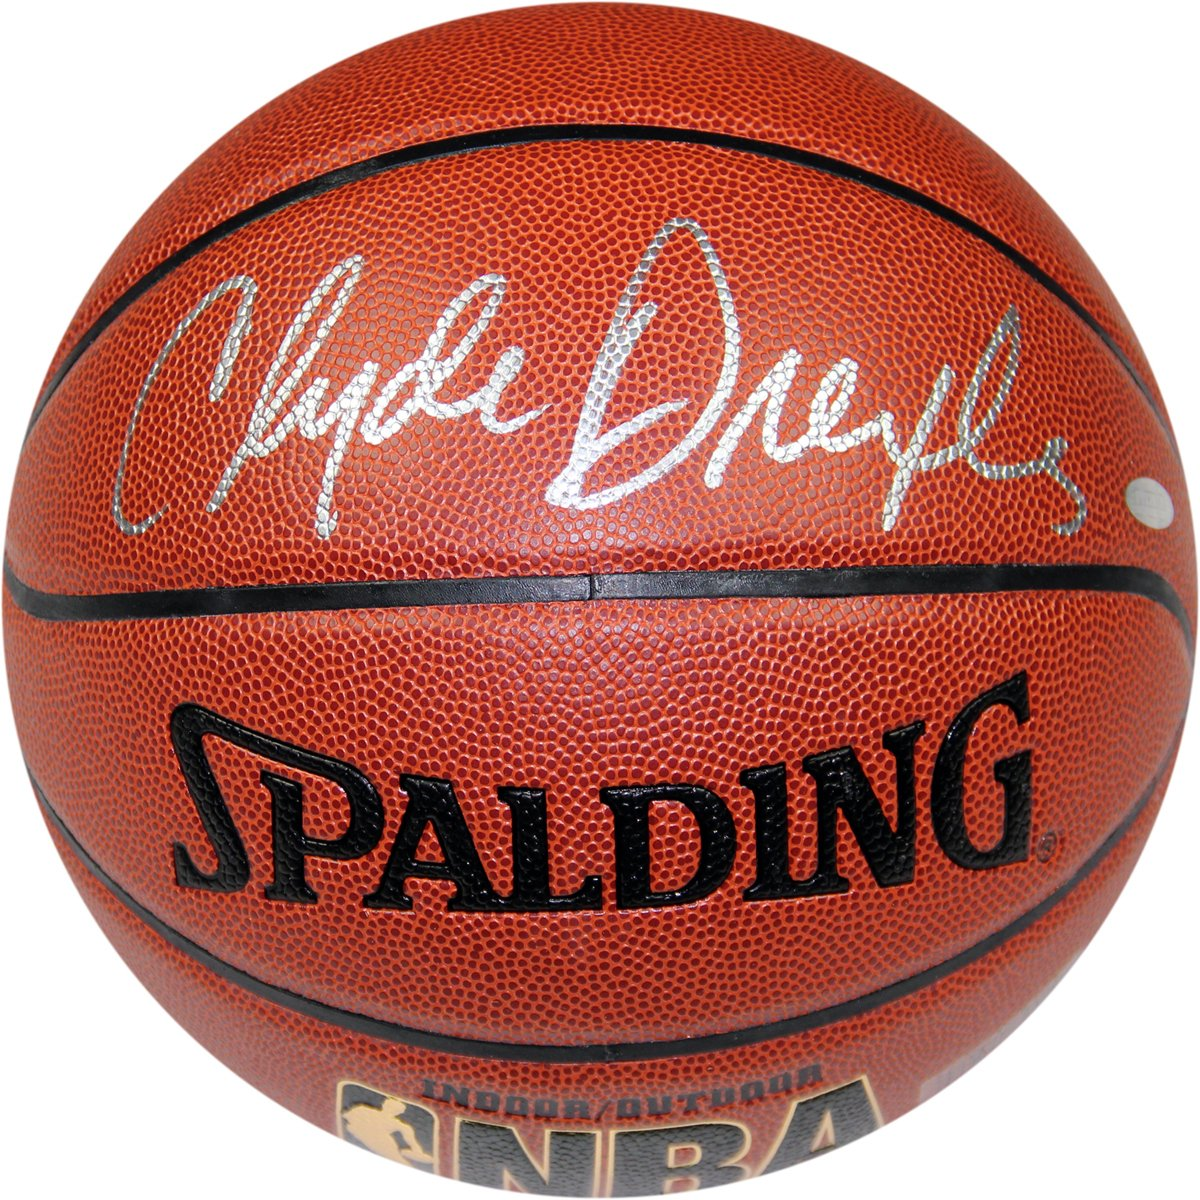 Steiner Sports NBA Houston Rockets Clyde Drexler Signed Zi/O Basketball DREXBKS000003